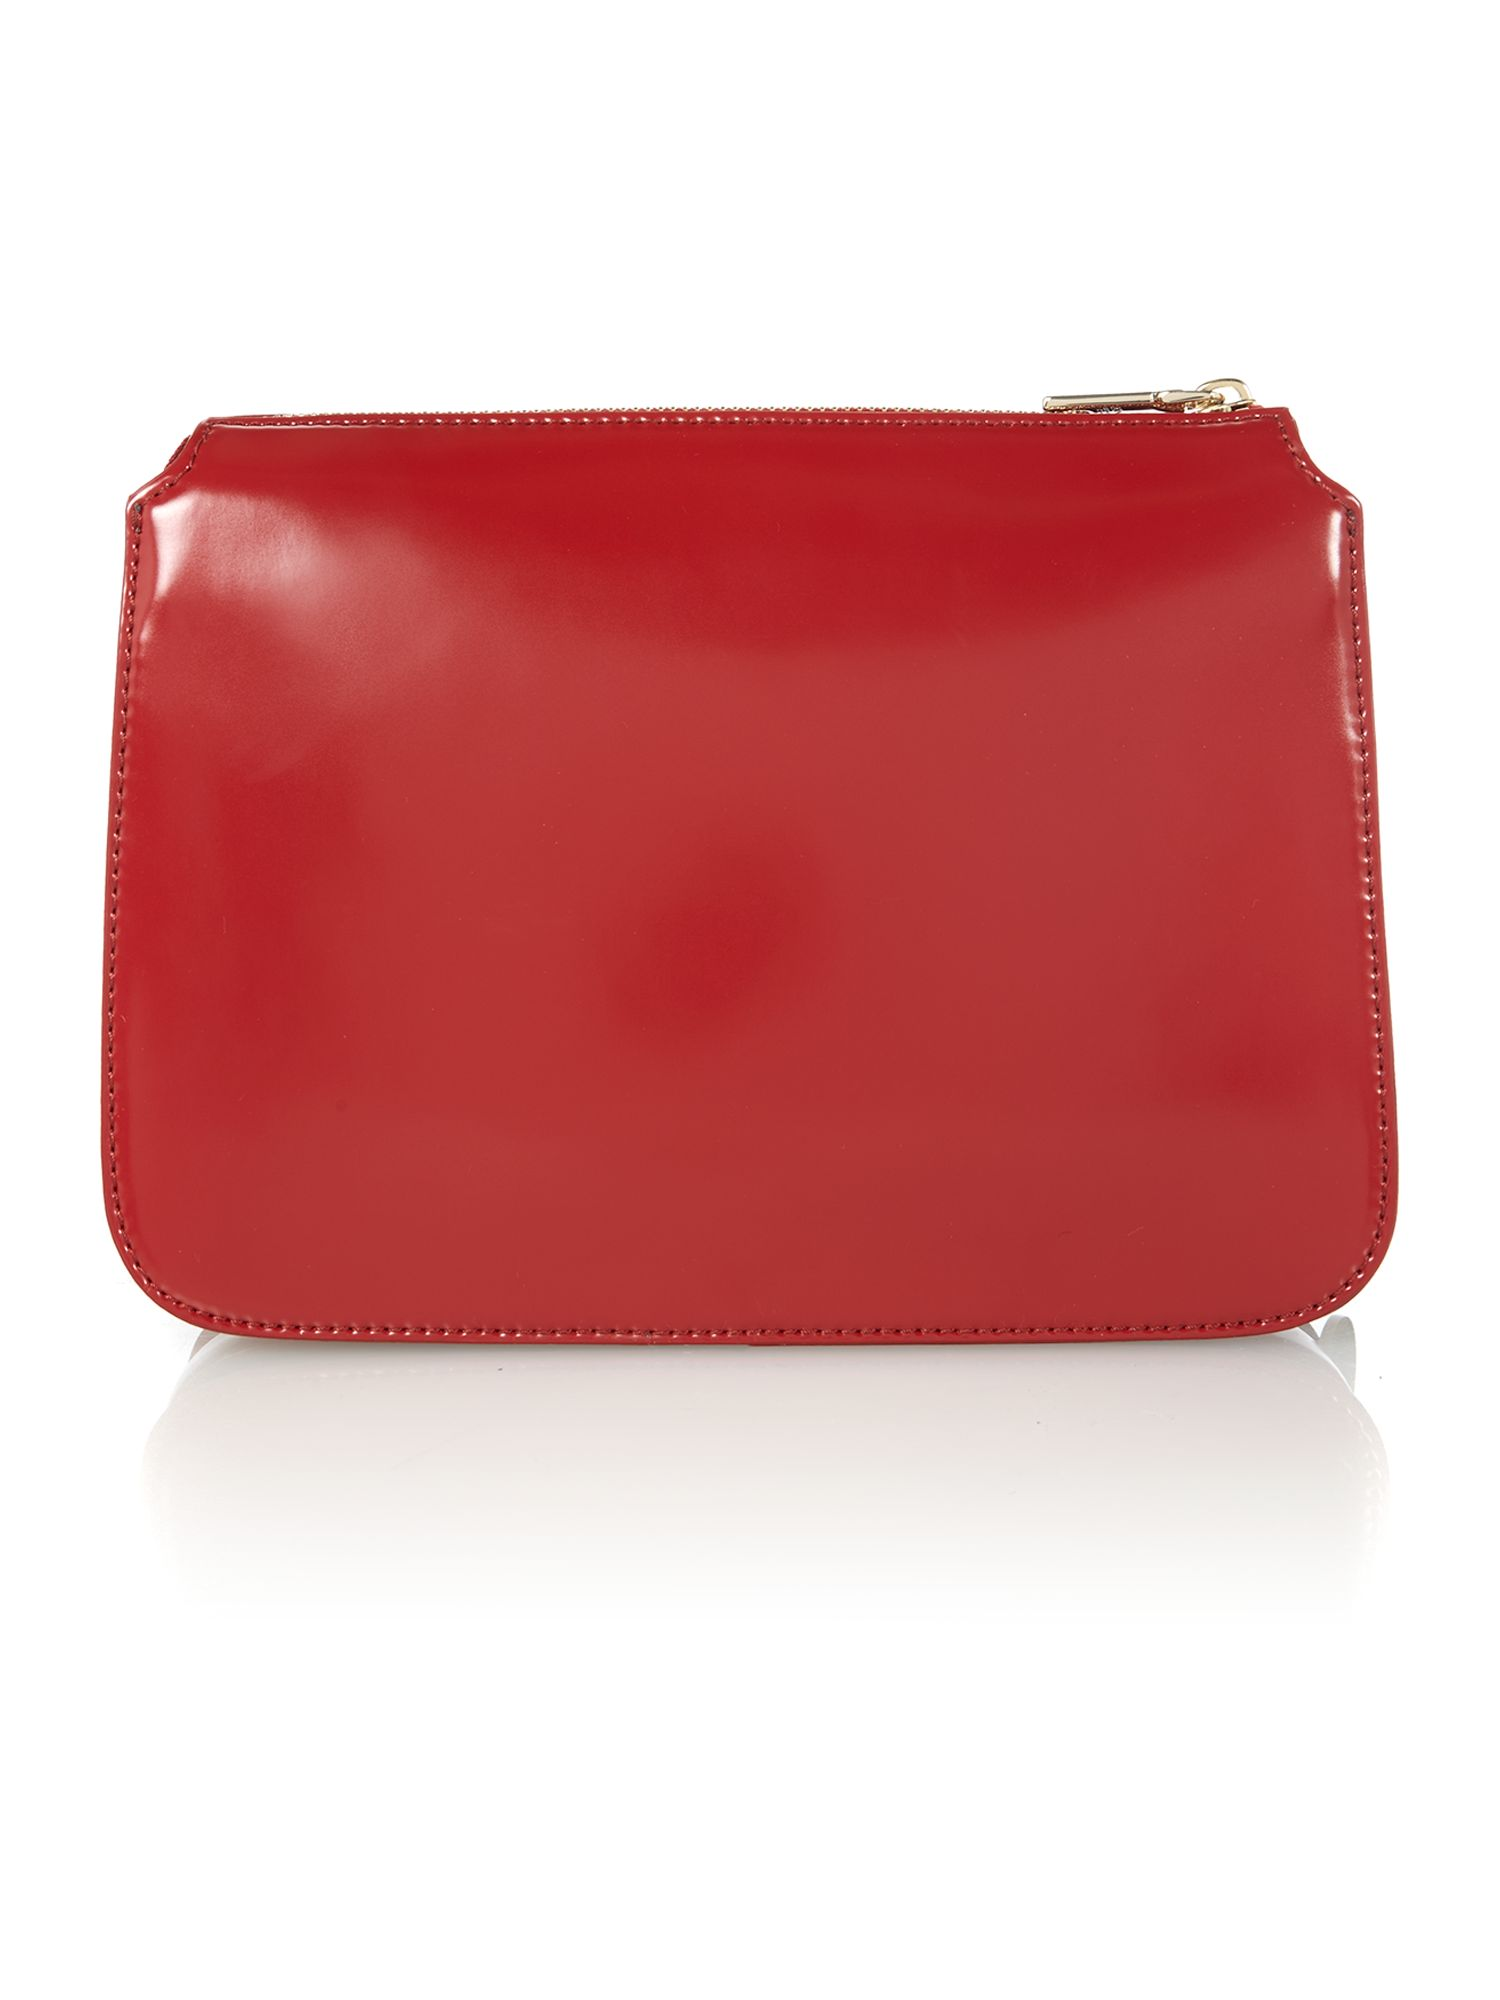 Hudson red crossbody bag